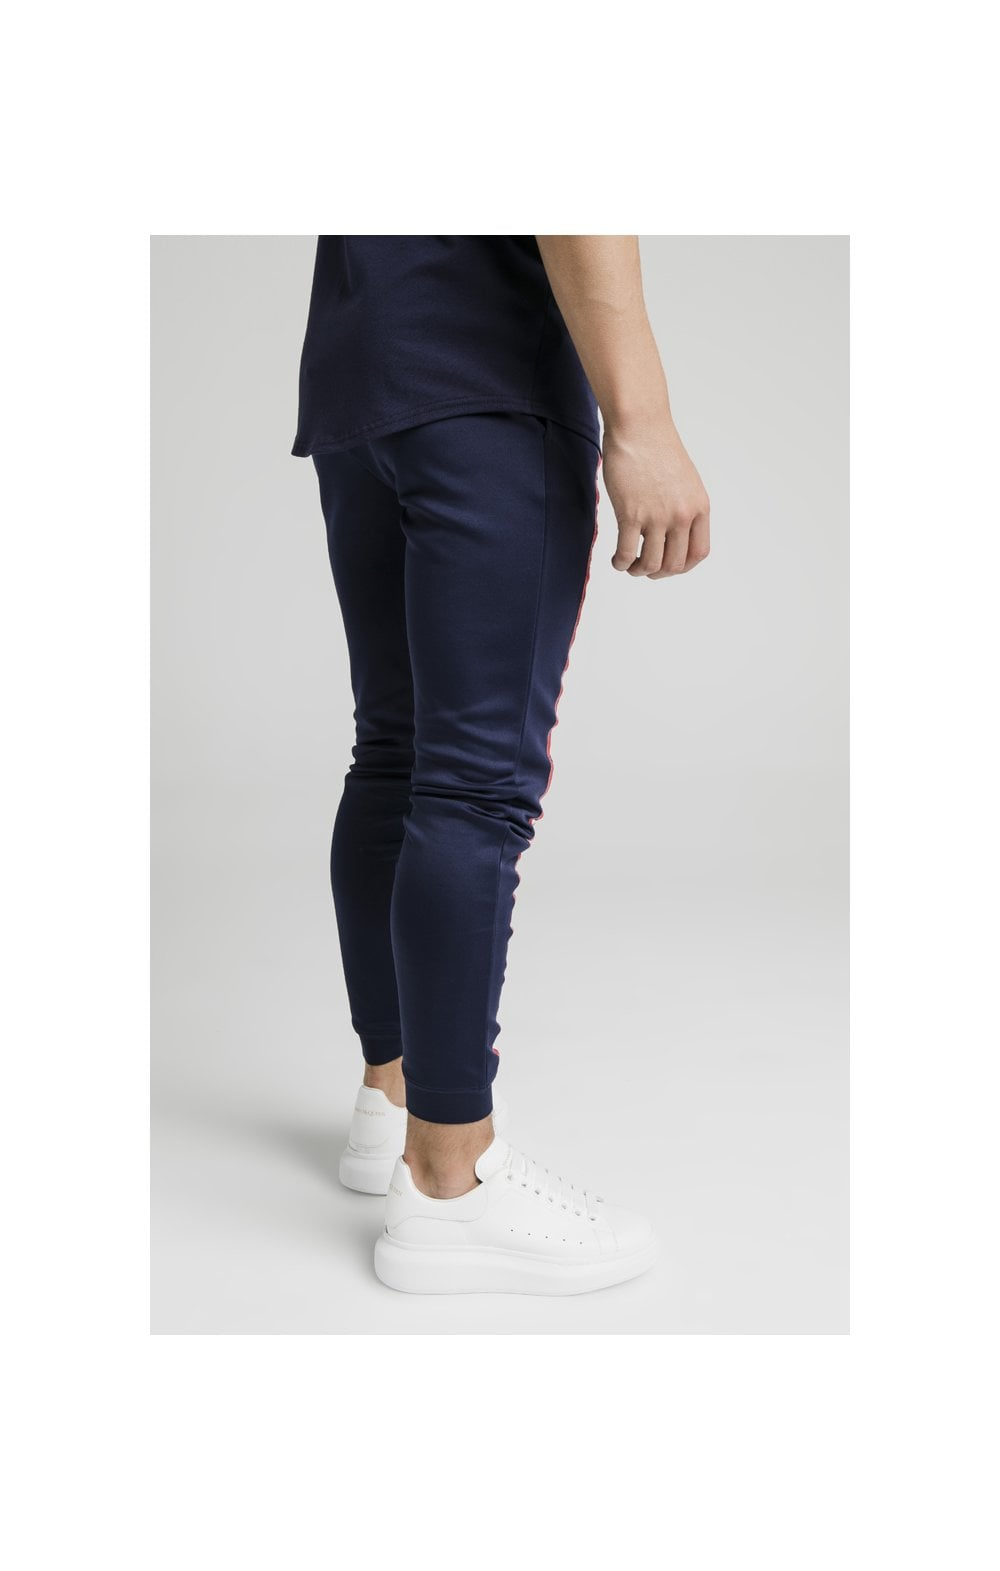 Illusive London Side Tape Joggers - Navy (4)